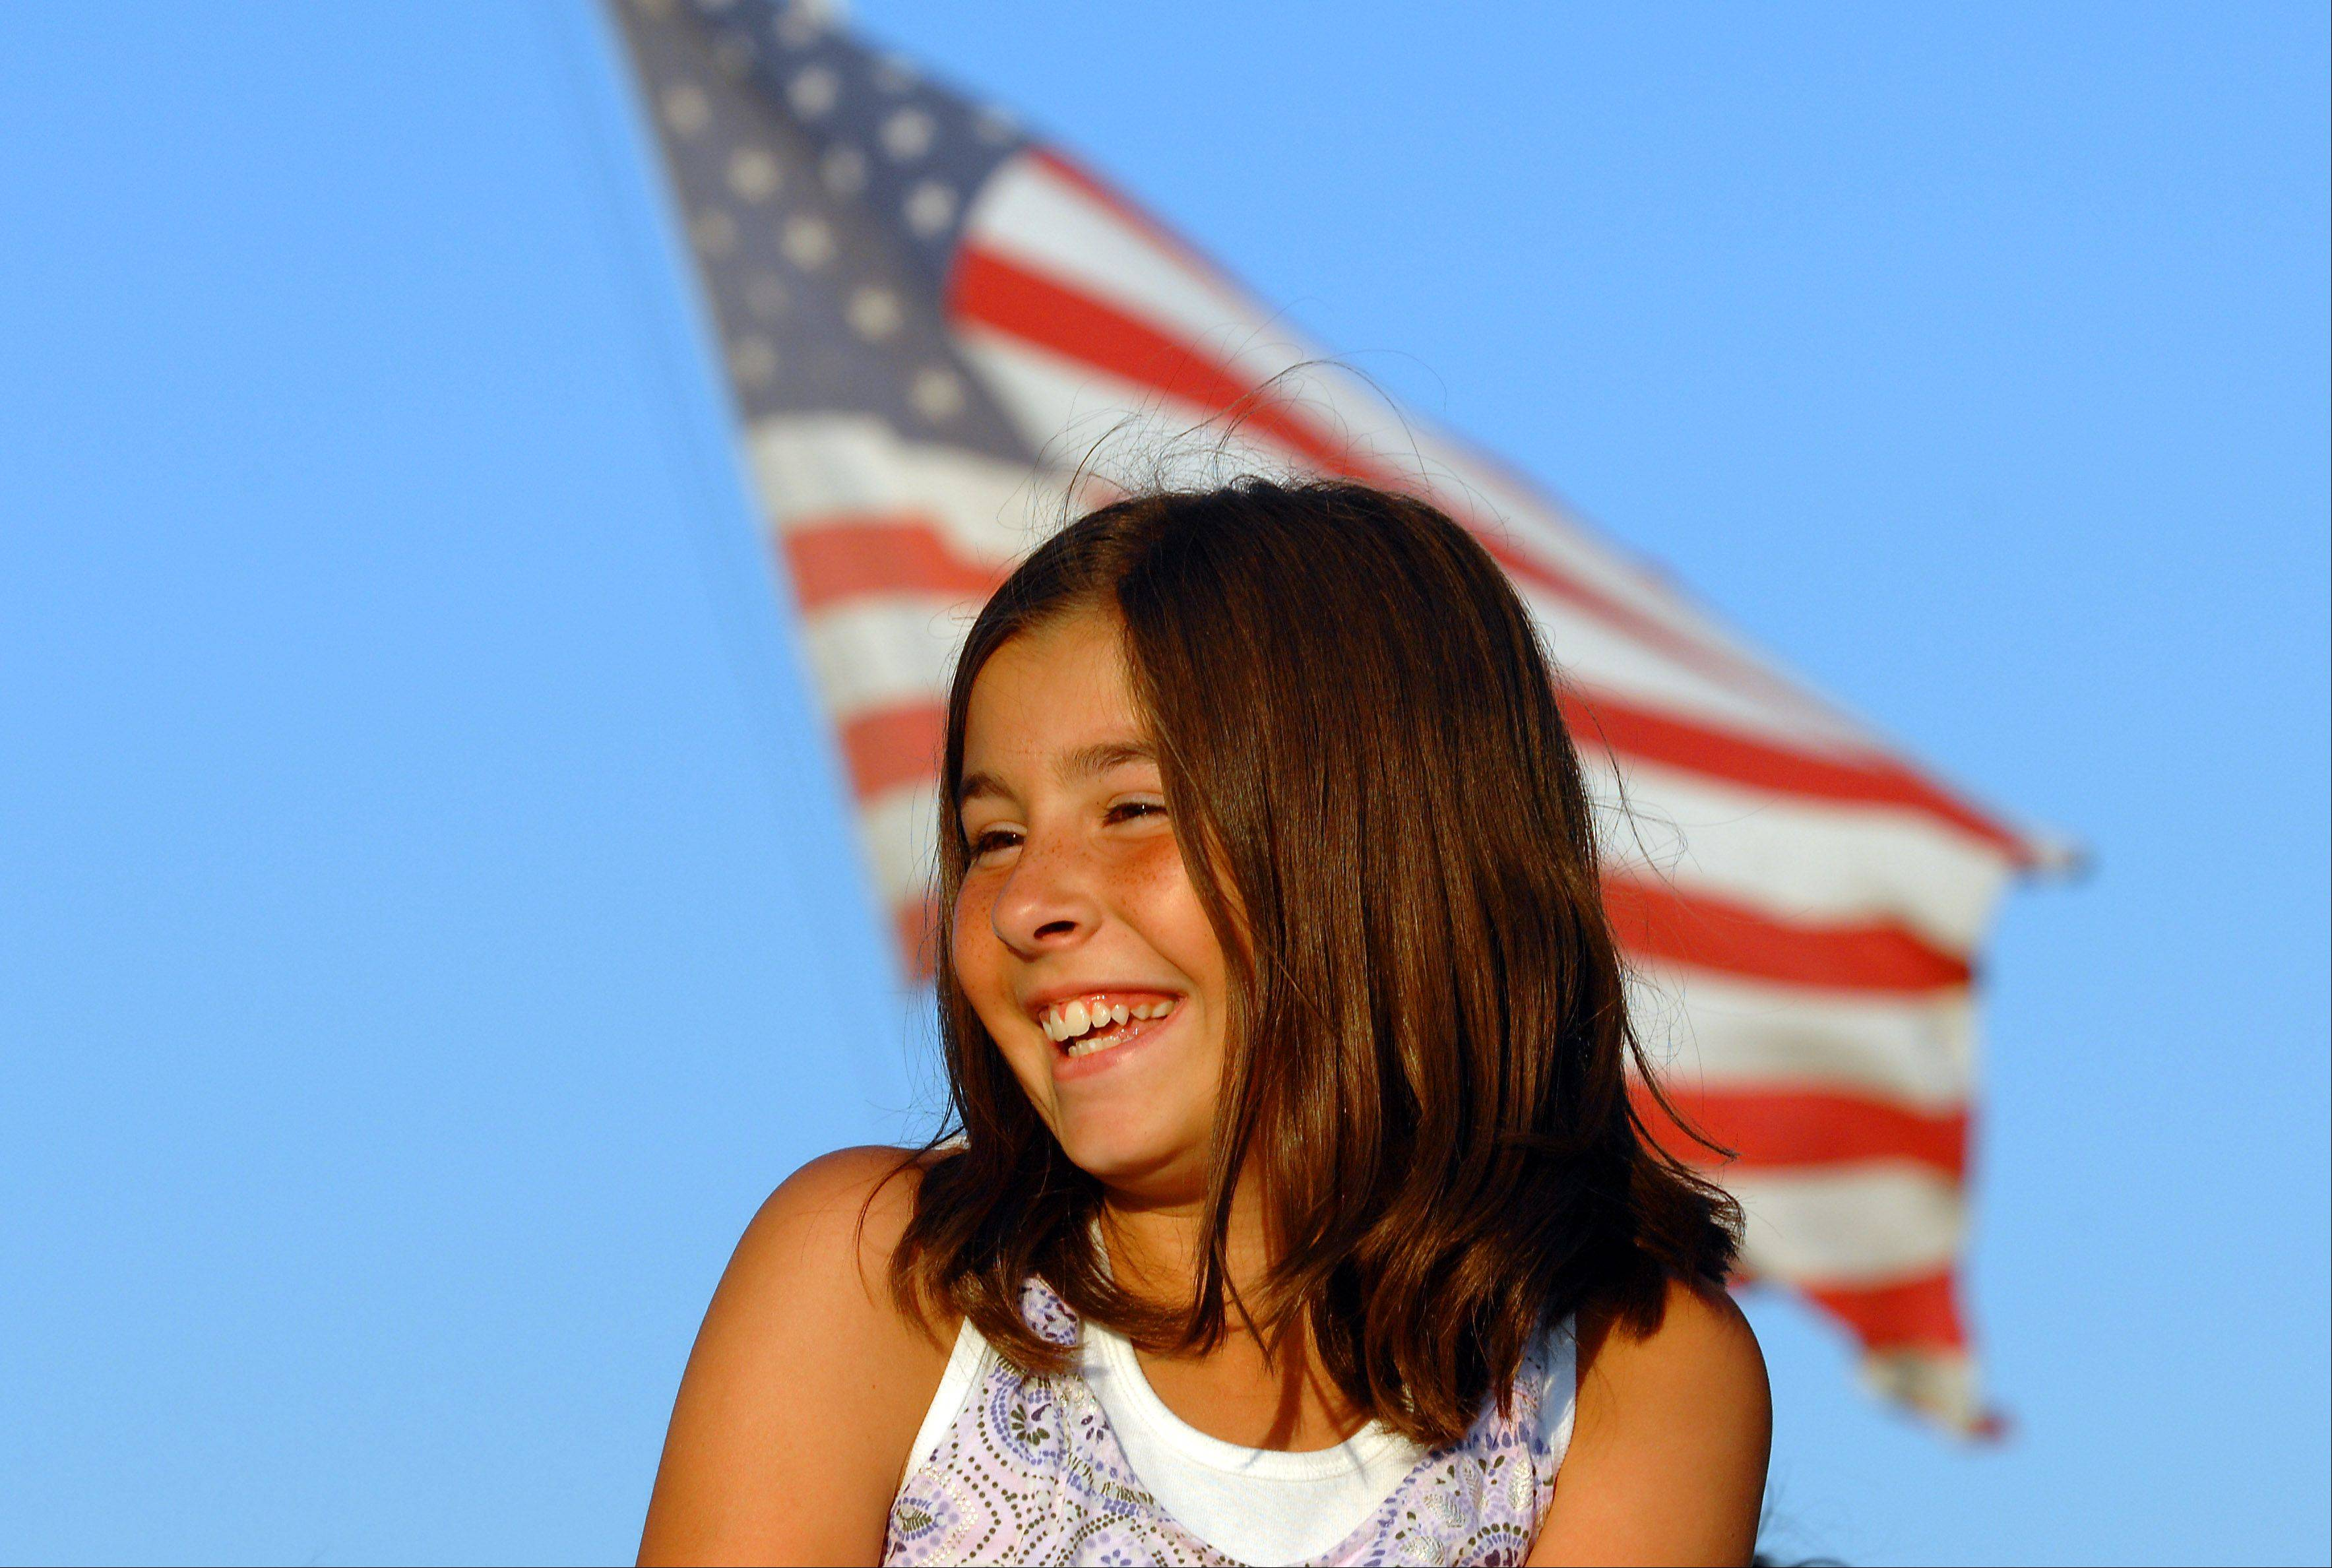 Emily Bacich, 11, of Bartlett watches a baseball game Thursday across from where Bartlett firefighters hoisted a 75-pound American flag atop a fire truck's tower to honor Sept. 11 emergency workers.